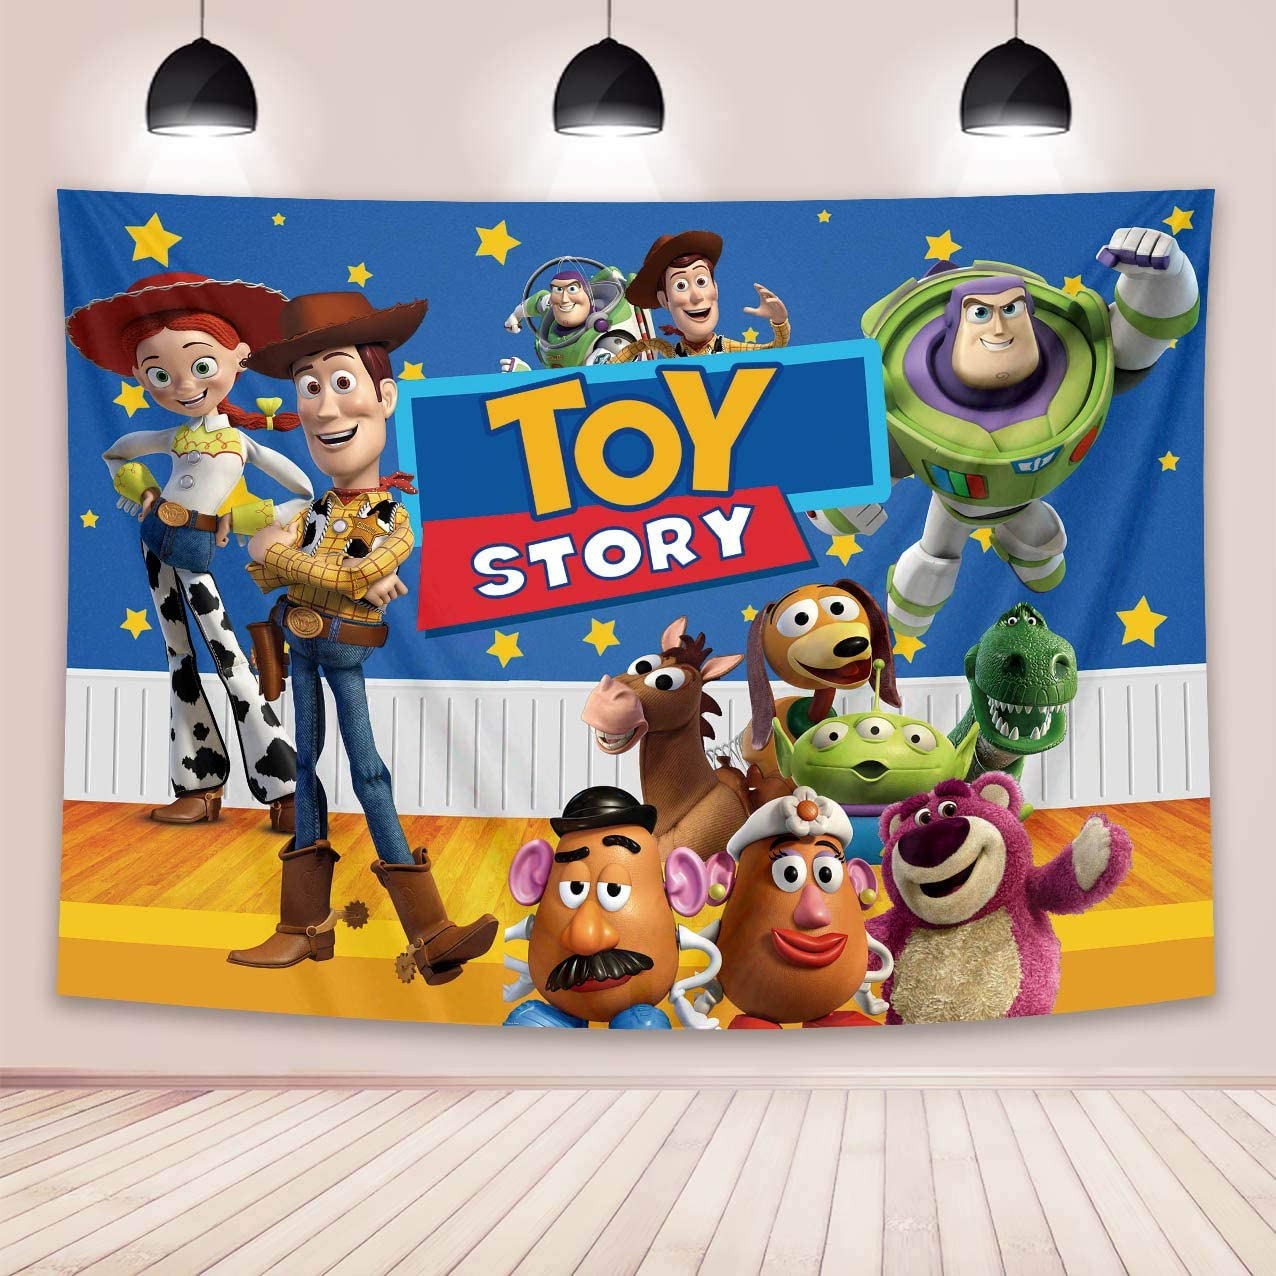 Cartoon Toy Story Photography Backdrop 7x5FT Blue Sky Star Kids Birthday Party Boy Baby Shower Background Studio Photography Props